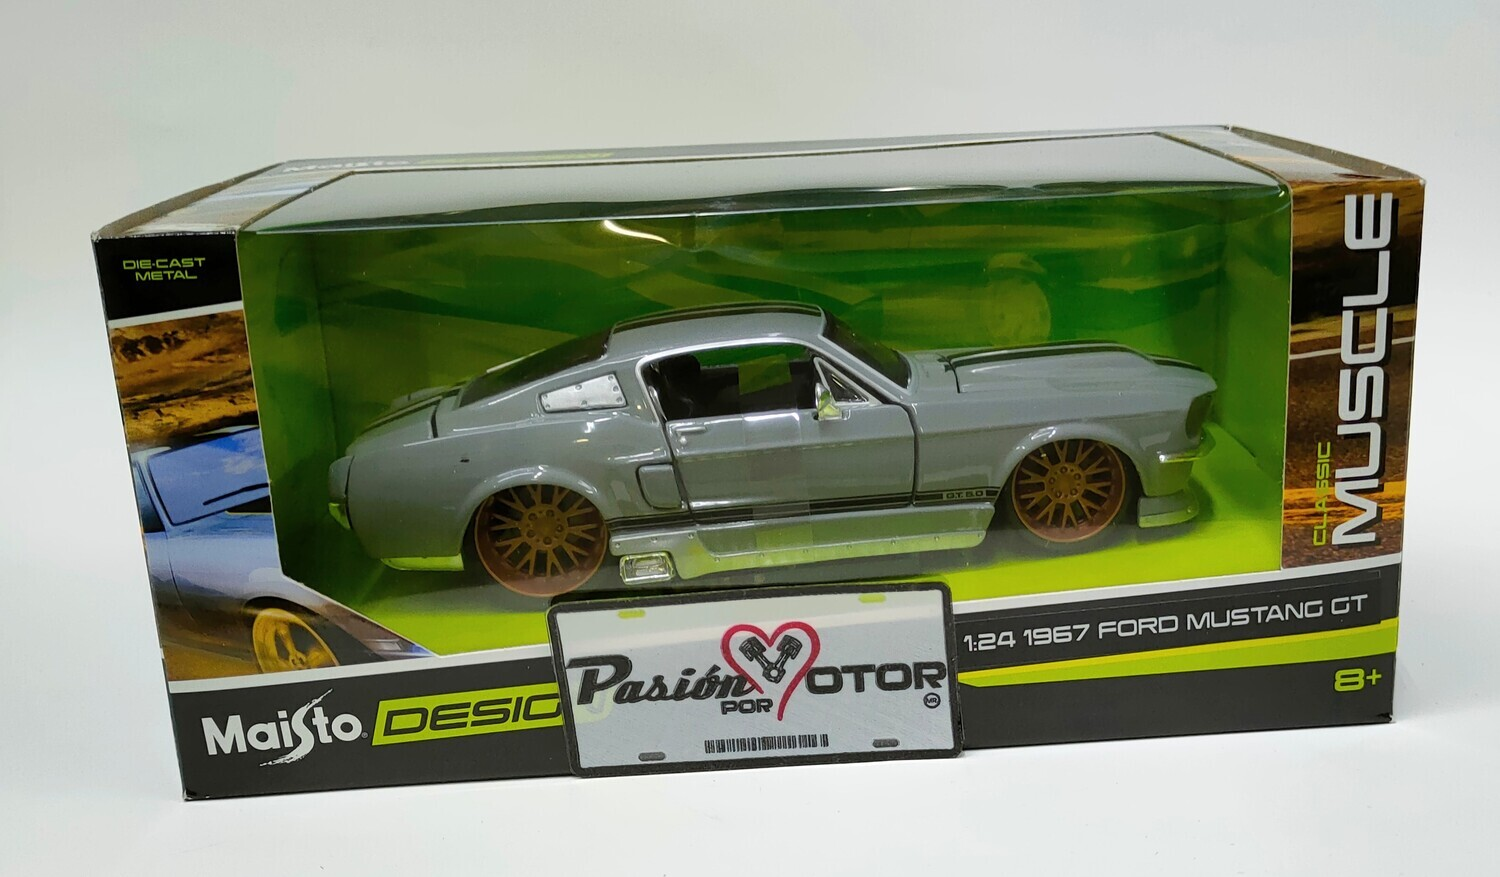 Maisto 1:24 Ford Mustang GT Coupe Fastback 2+2 1967 Gris perla Design Classic Muscle Con Caja